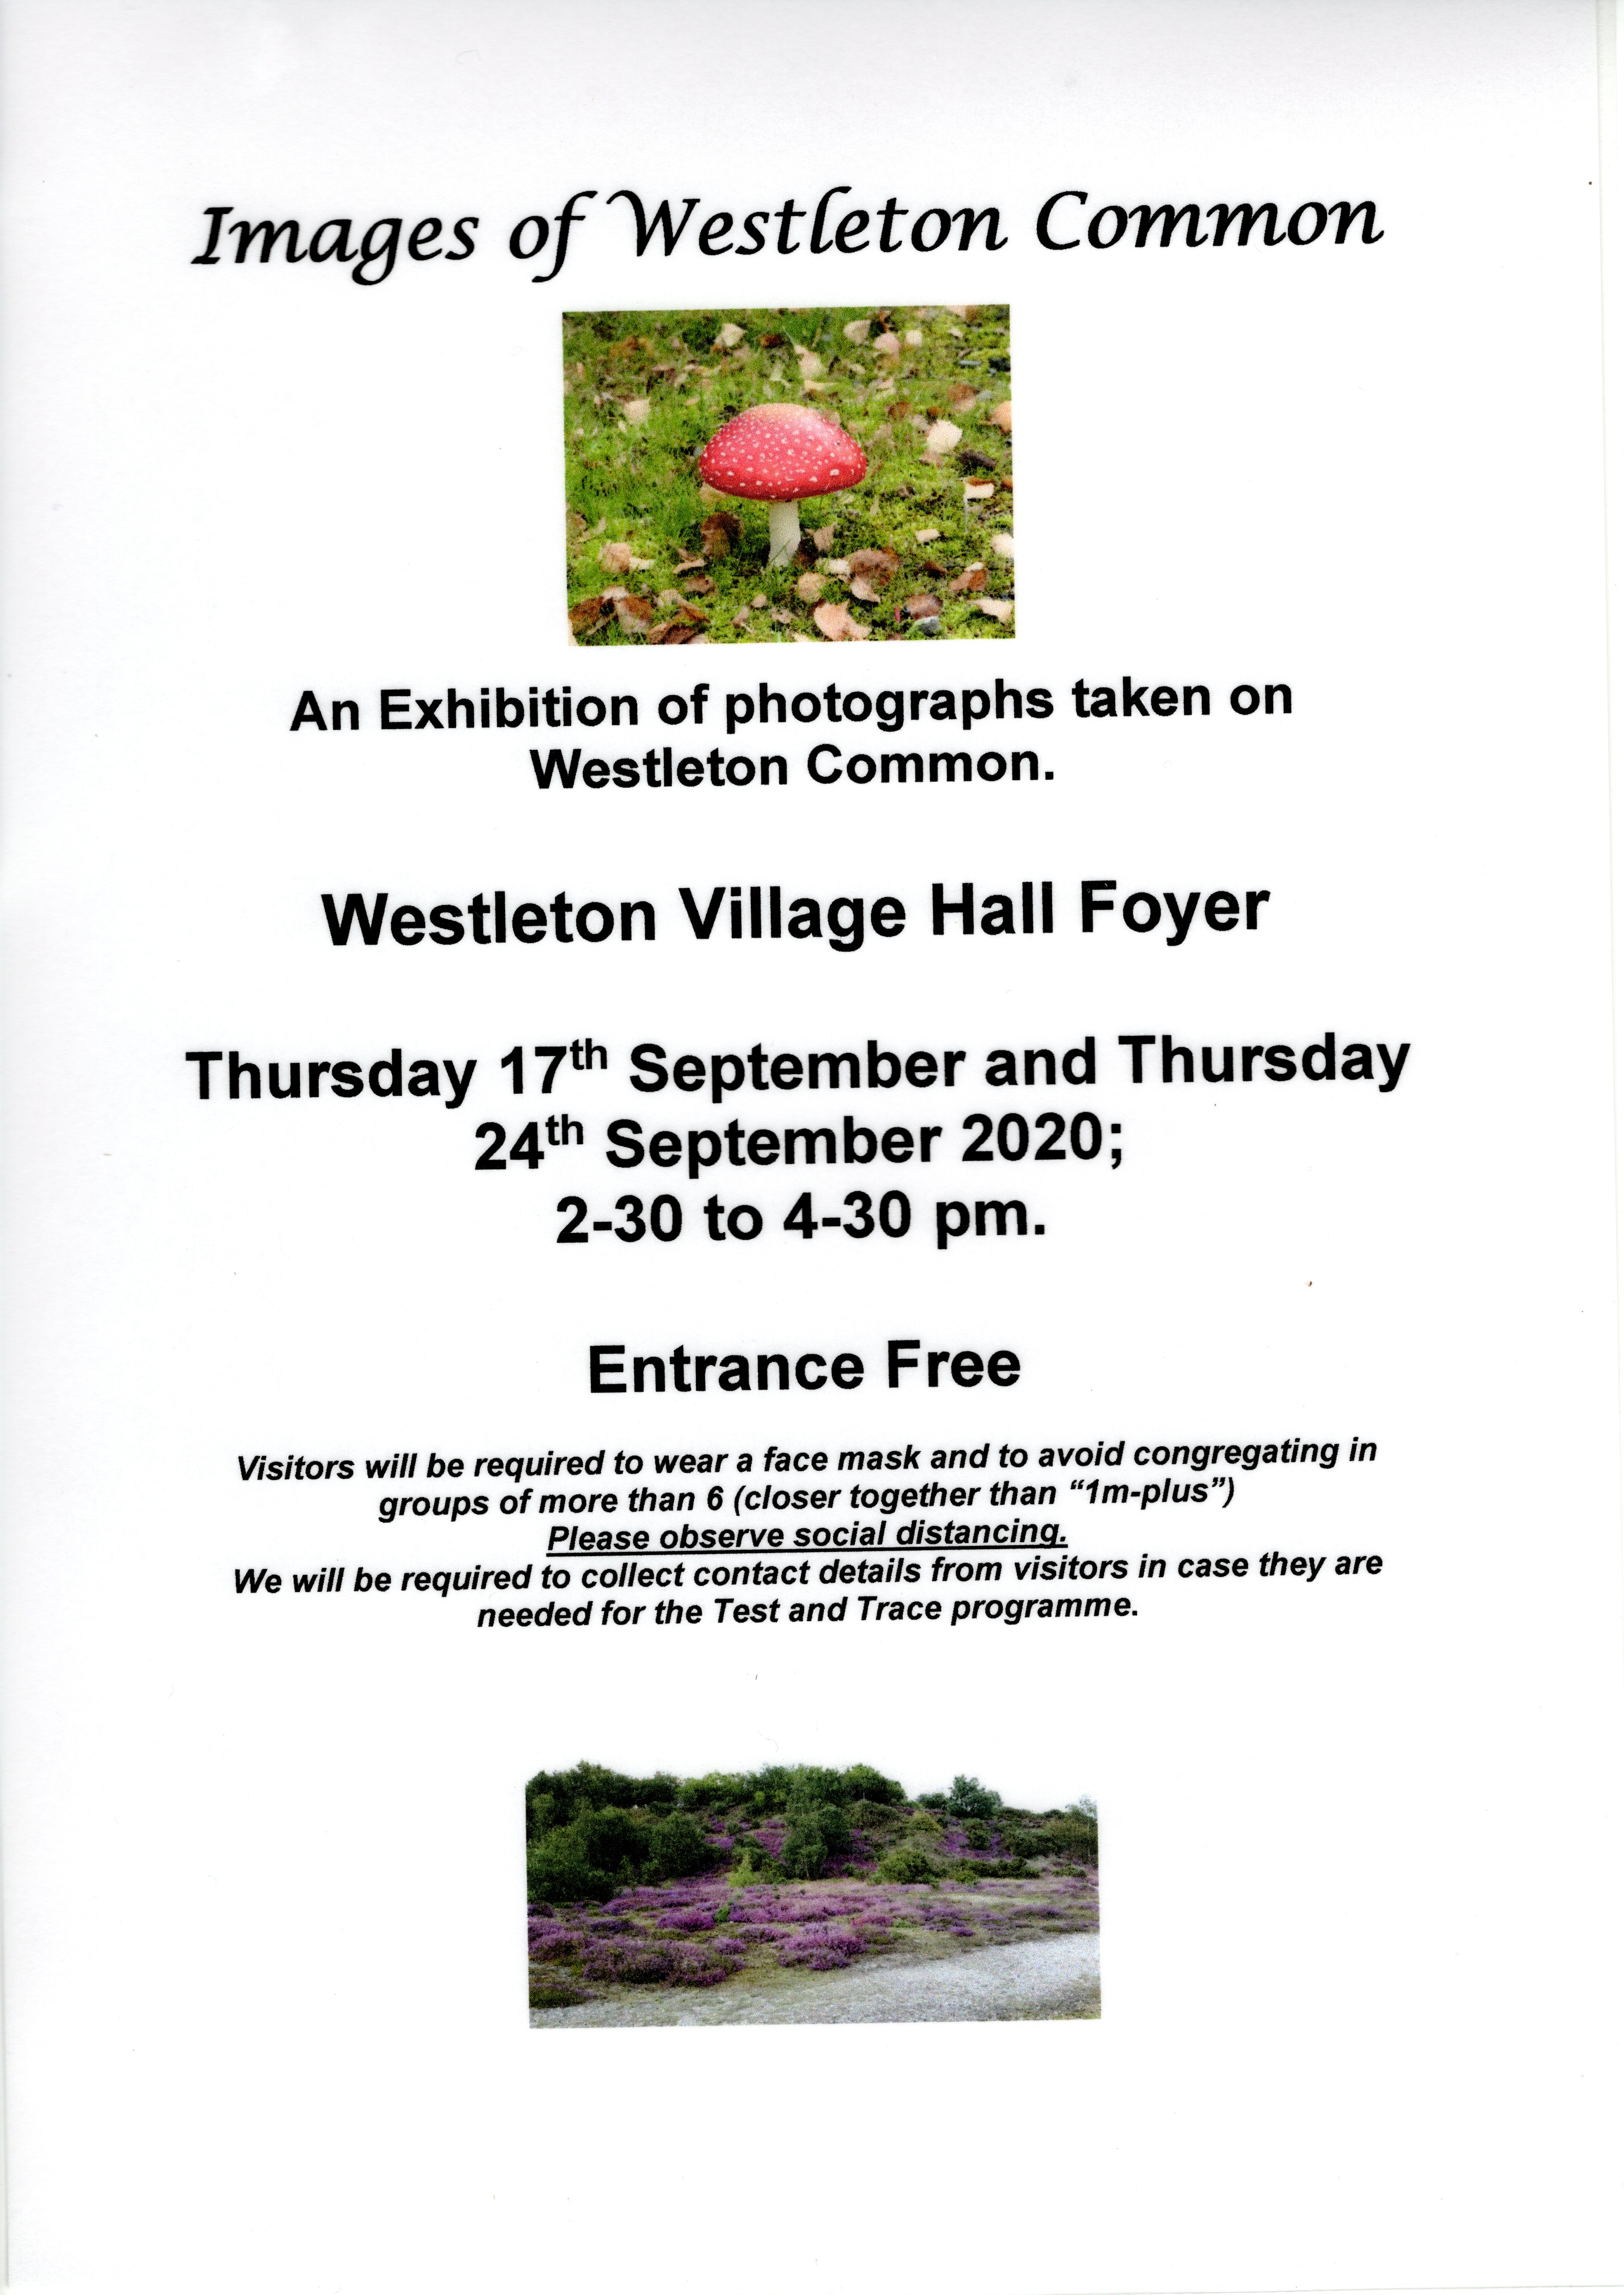 "Images of Westleton Common  An Exhibition of photographs taken on Westleton Common.  Westleton Village Hall Foyer  Thursday 17th September and Thursday 24th September 2020; 2-30 to 4-30 pm.  Entrance Free  Visitors will be required to wear a face mask and to avoid congregating in groups of more than 6 (closer together than ""1m-plus"") Please observe social distancing. We will be required to collect contact details from visitors in case they are needed for the Test and Trace programme."